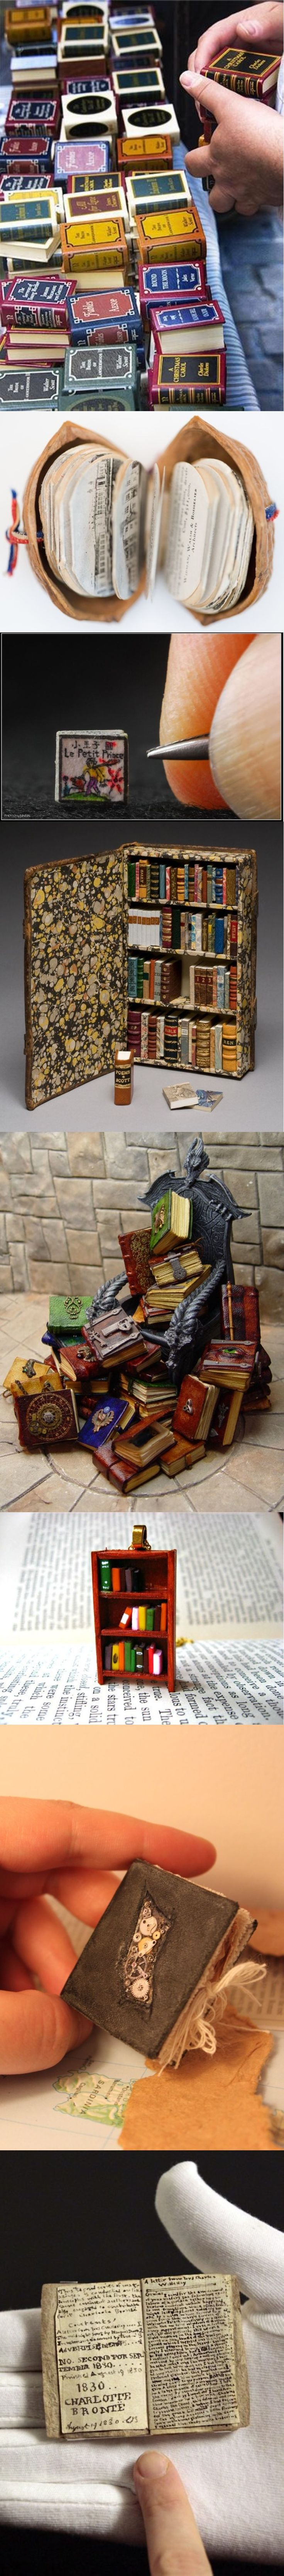 Miniature books. Fascinating handicrafts and more ..http://www.cavendishsq.com/